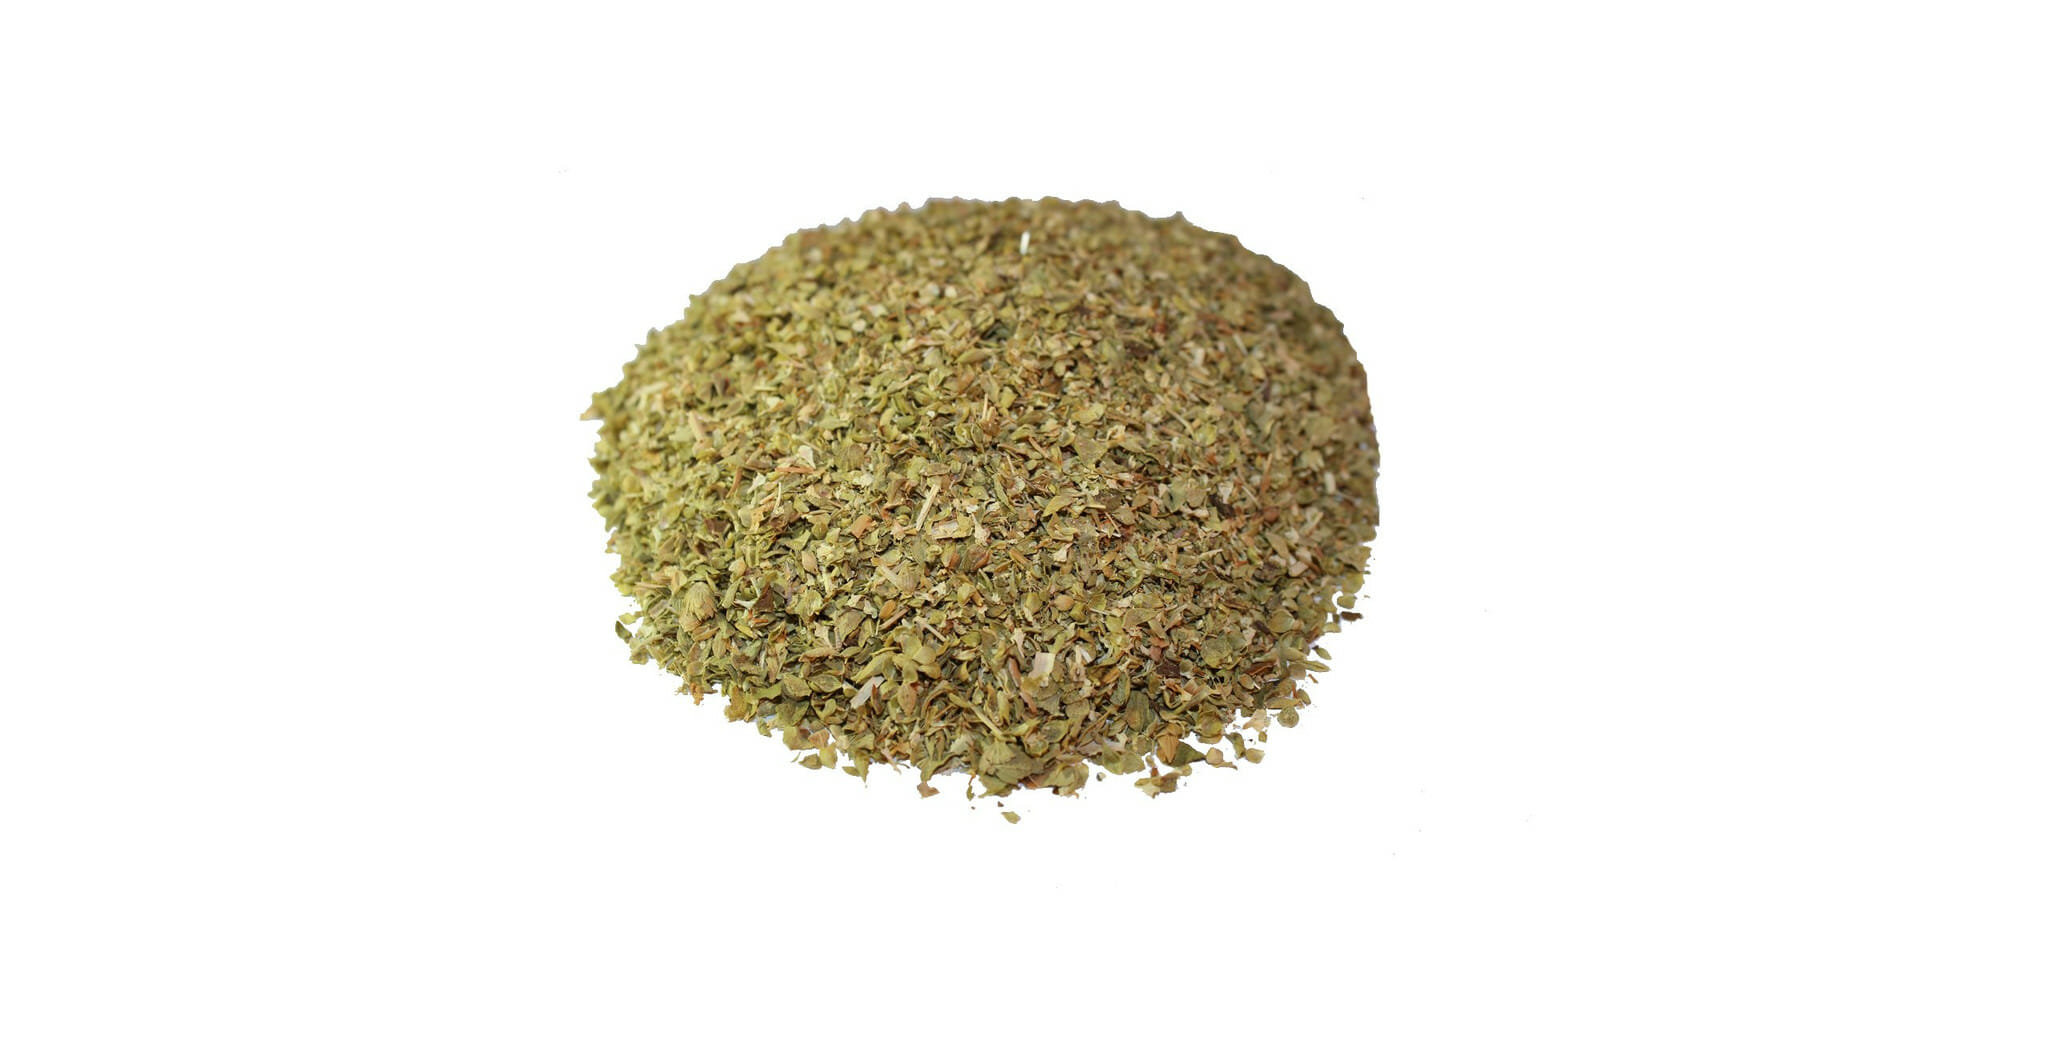 Oregano dried herb the spiceworks online wholesale